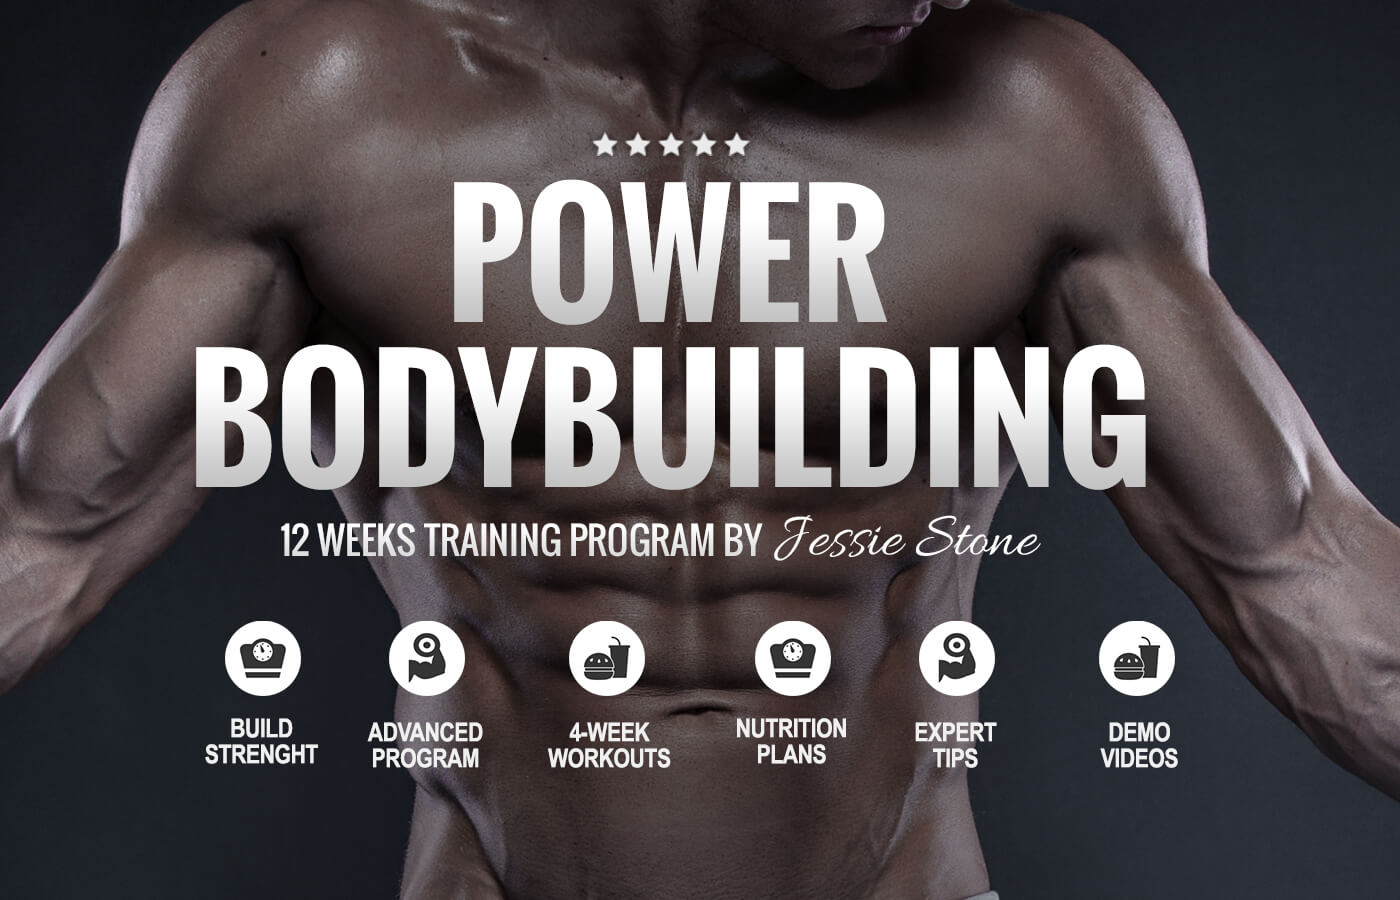 Power BodyBuilding